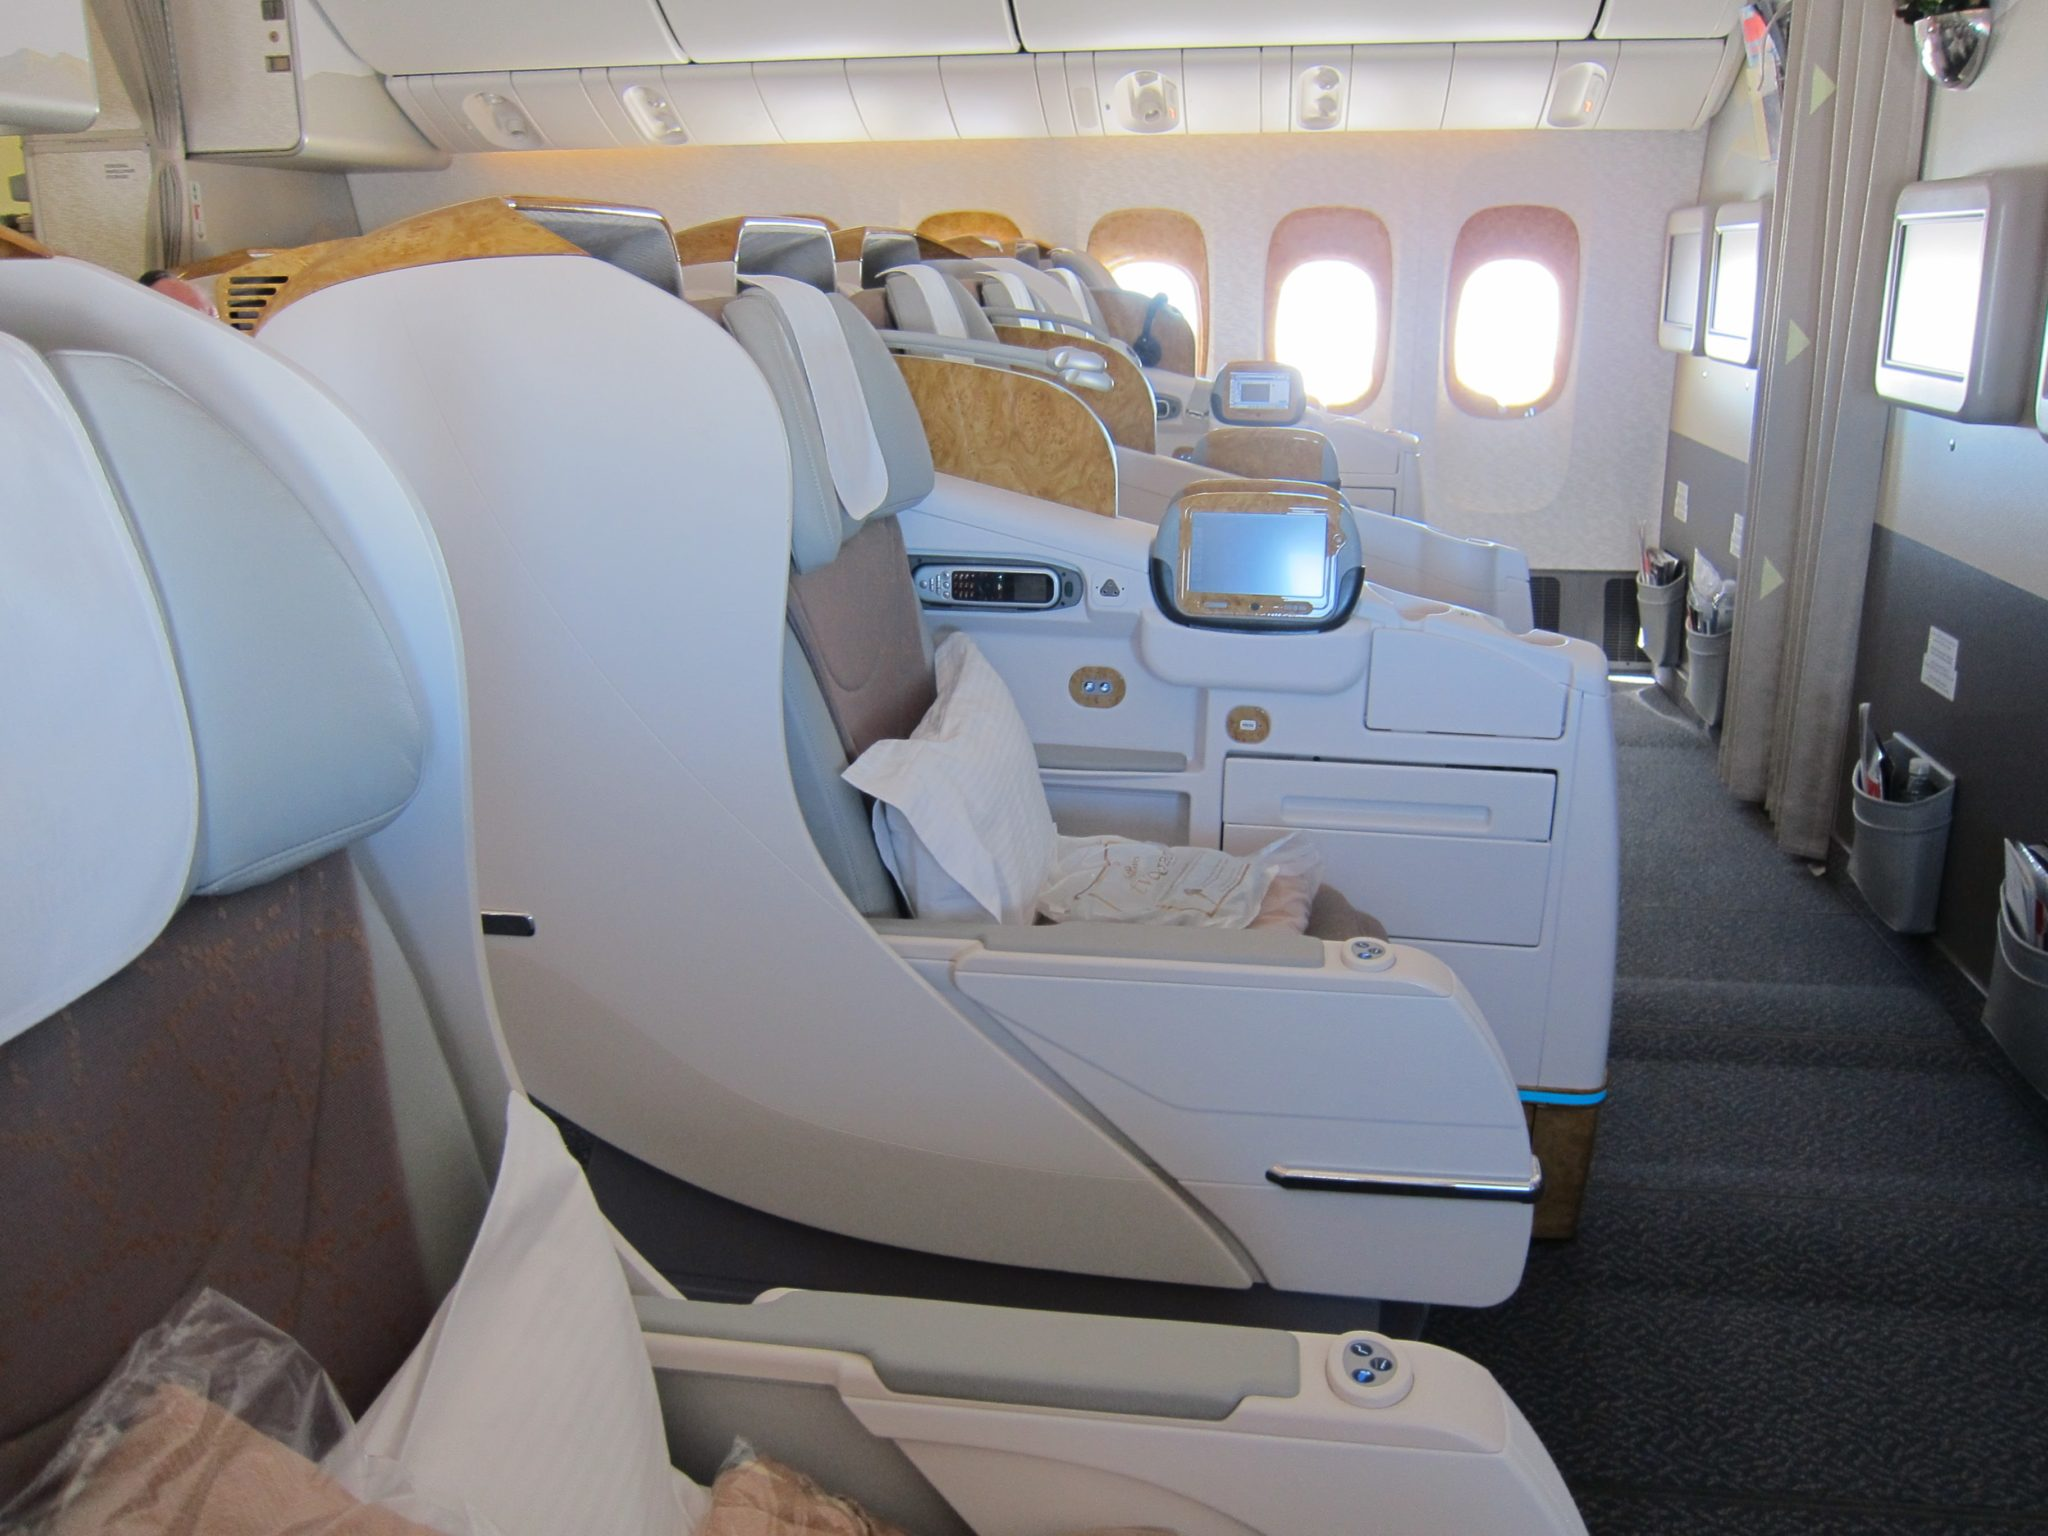 Emirates' existing angled lie-flat product is pitched at 72 — where is the extra room for fully flat